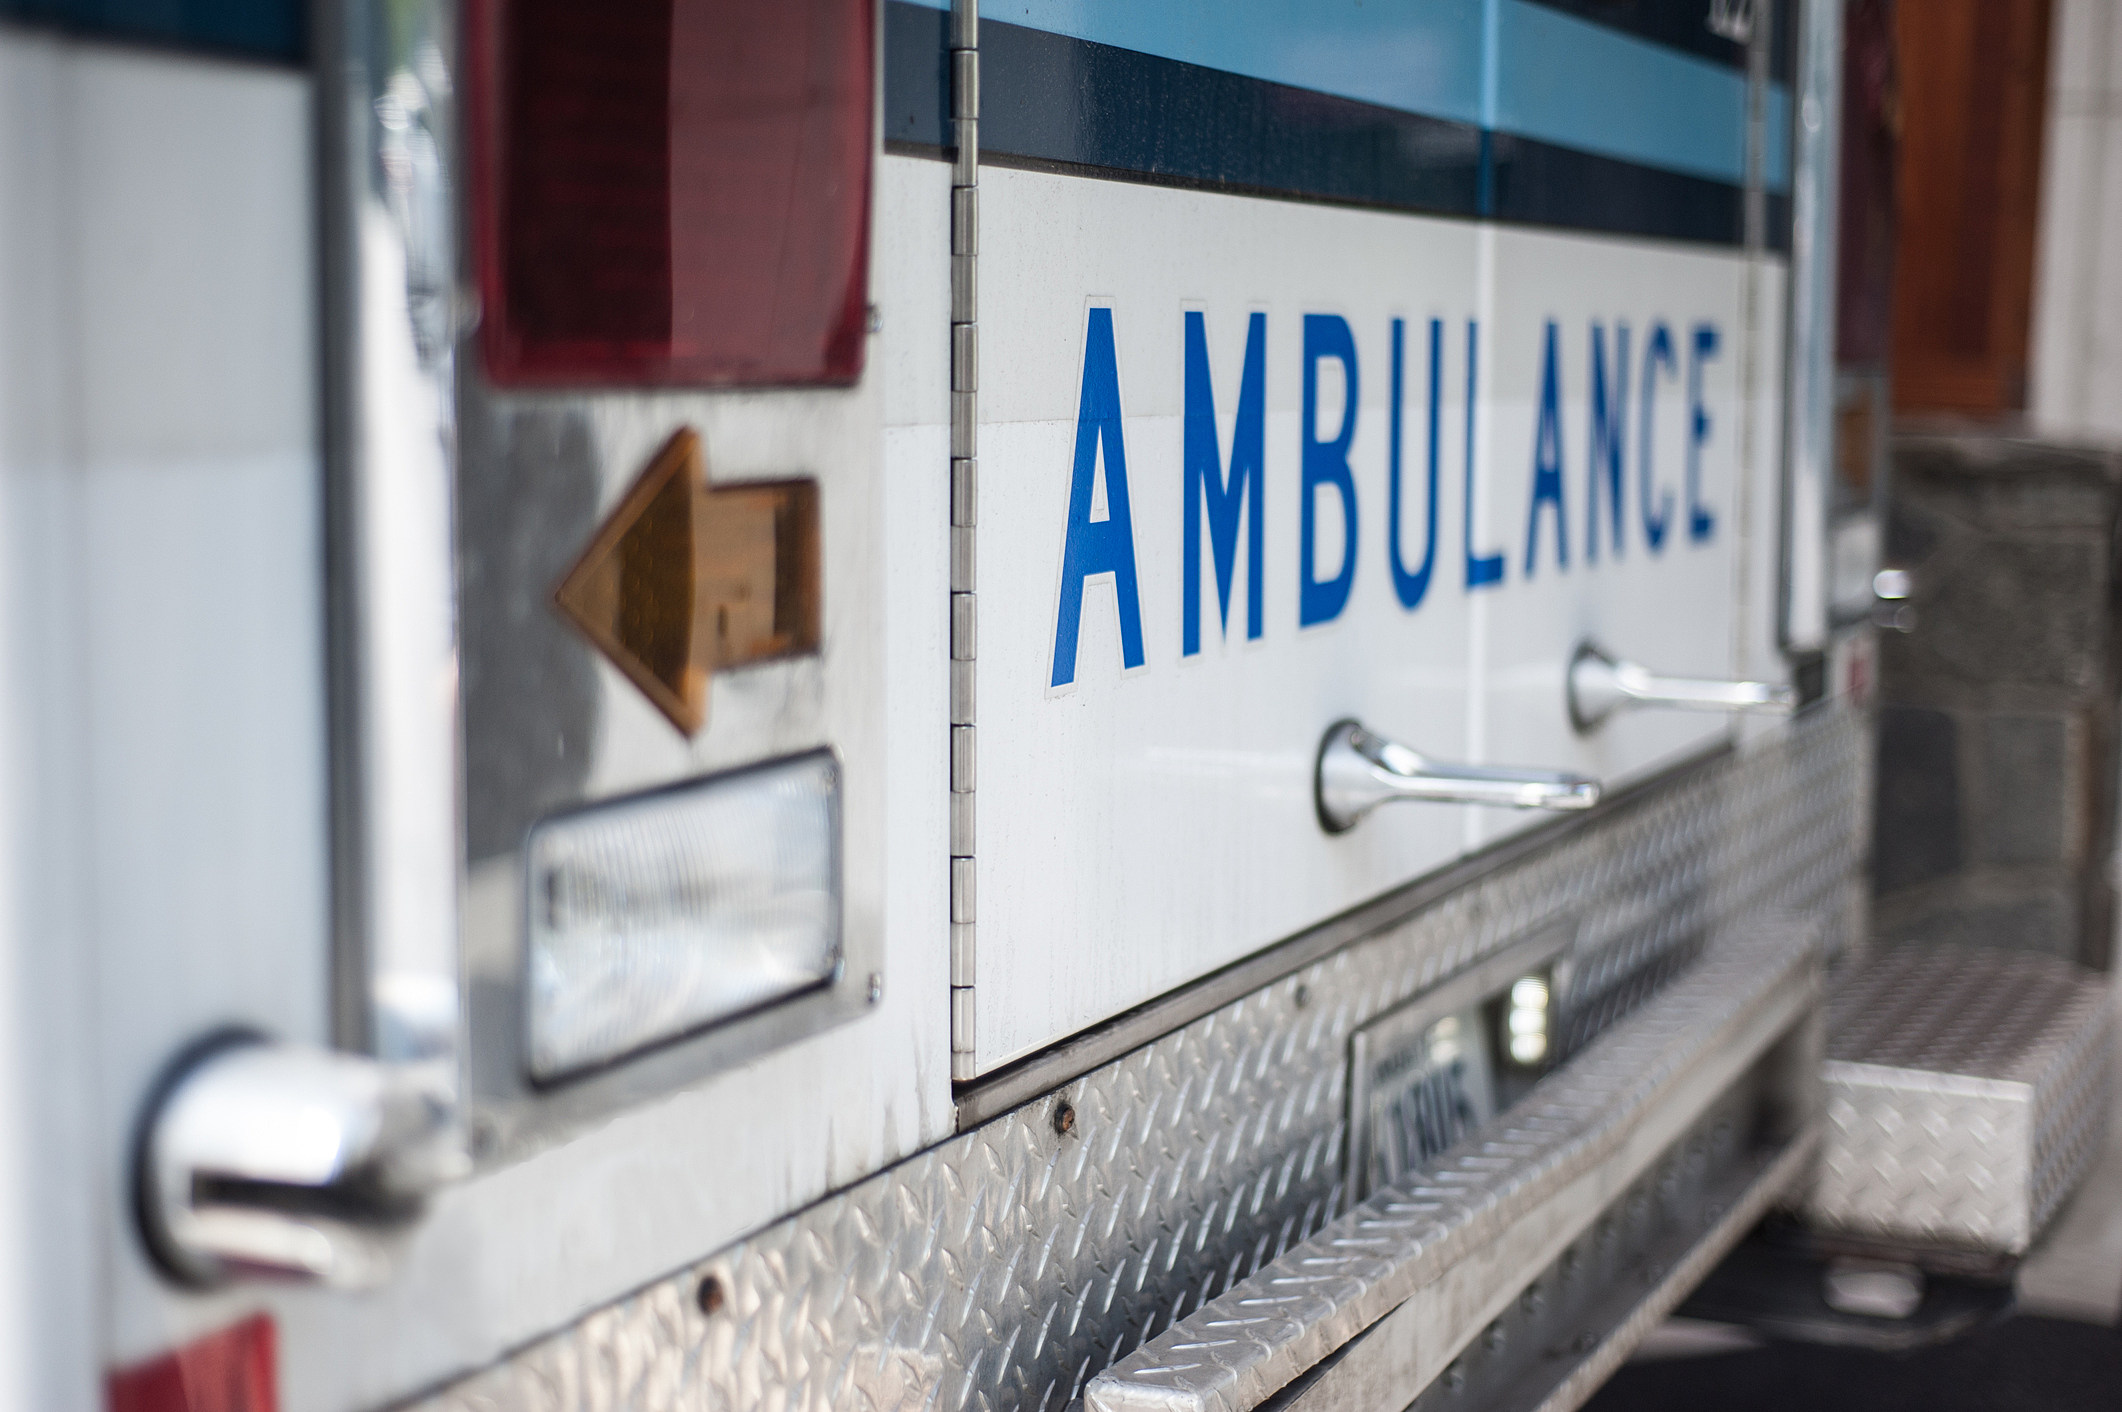 NJ worker critically hurt in 3-story elevator shaft fall — police